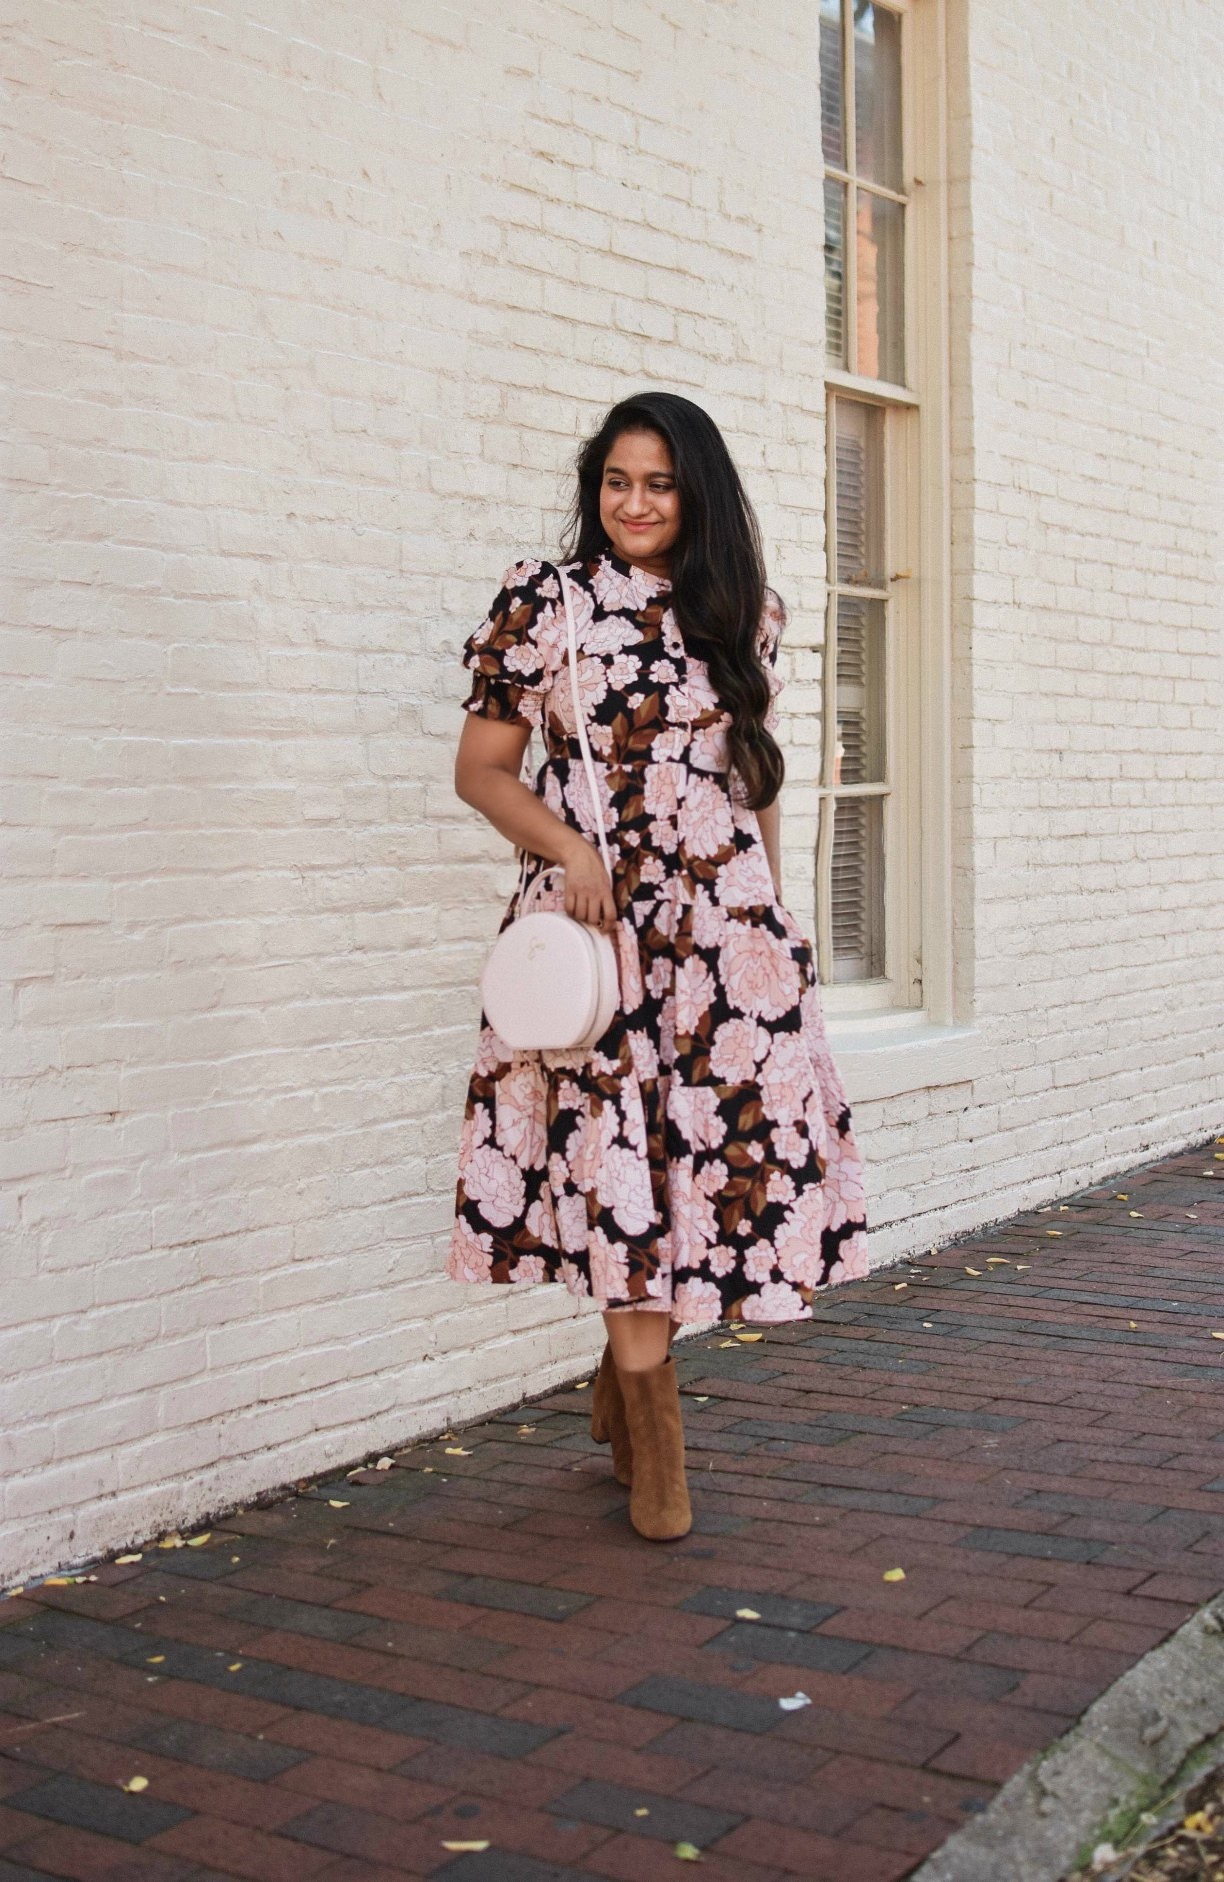 Fall Affordable Style-Wearing Target Who What Wear Short Puff Sleeve Tiered Babydoll Dress,Jcrew Suede Ankle boots, Velvet headband 2 | Fall Favorites by popular Maryland modest fashion blog, Dreaming Loud: image of a woman standing next to a white brick building and wearing a Target Women's Short Puff Sleeve Tiered Babydoll Dress, J. Crew Suede ankle boots, Cotton On Maddi Plait Headband, tde. Black Circle Bag, and Gorjana Reese Pearl Huggies.